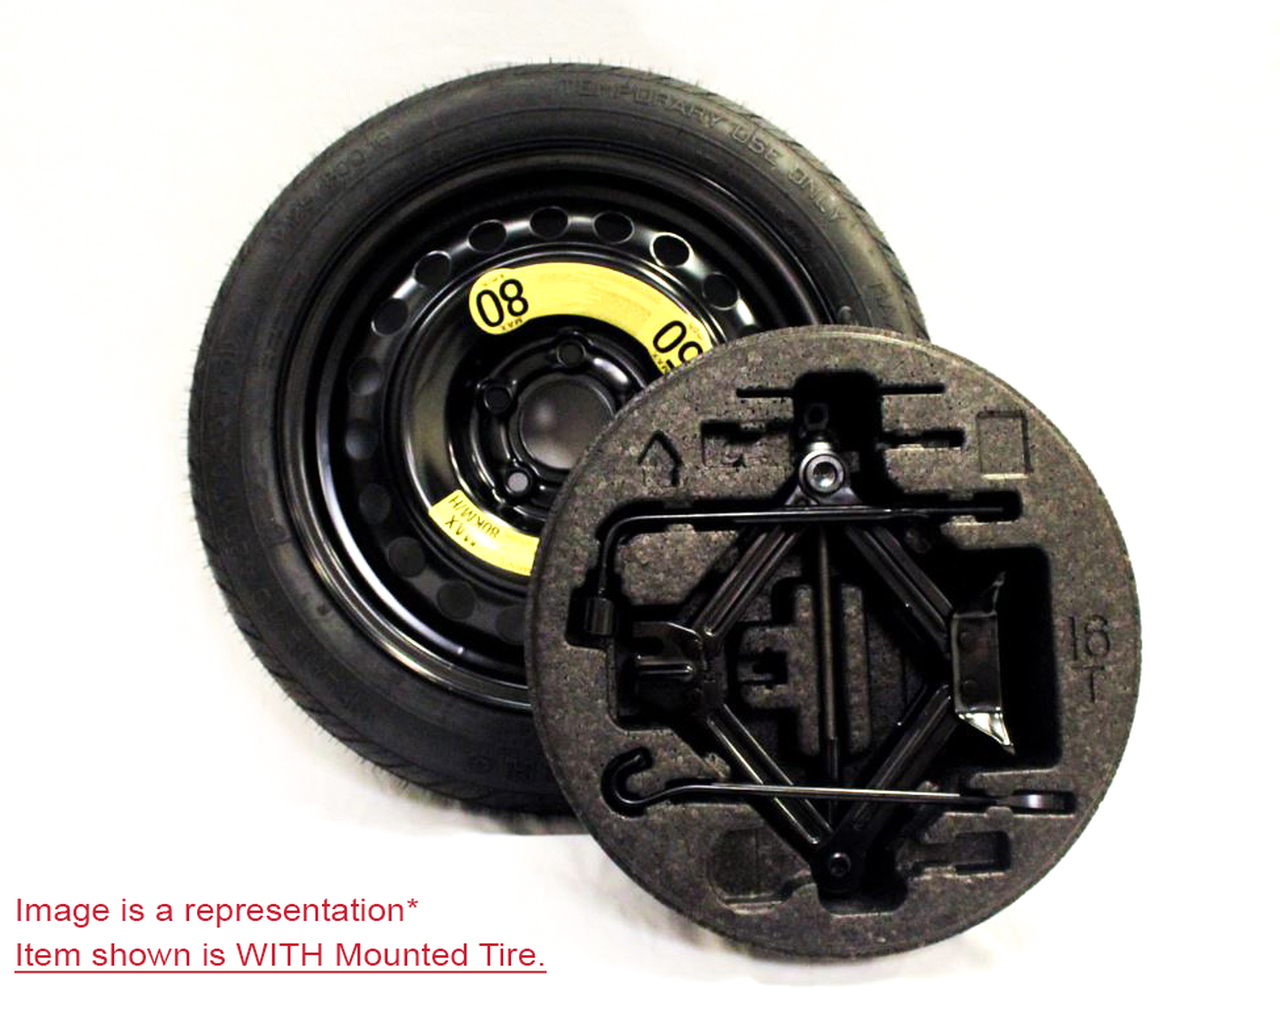 2014-2021 Kia Soul Spare Tire Kit - OPTION 2 - WITH MOUNTED TIRE